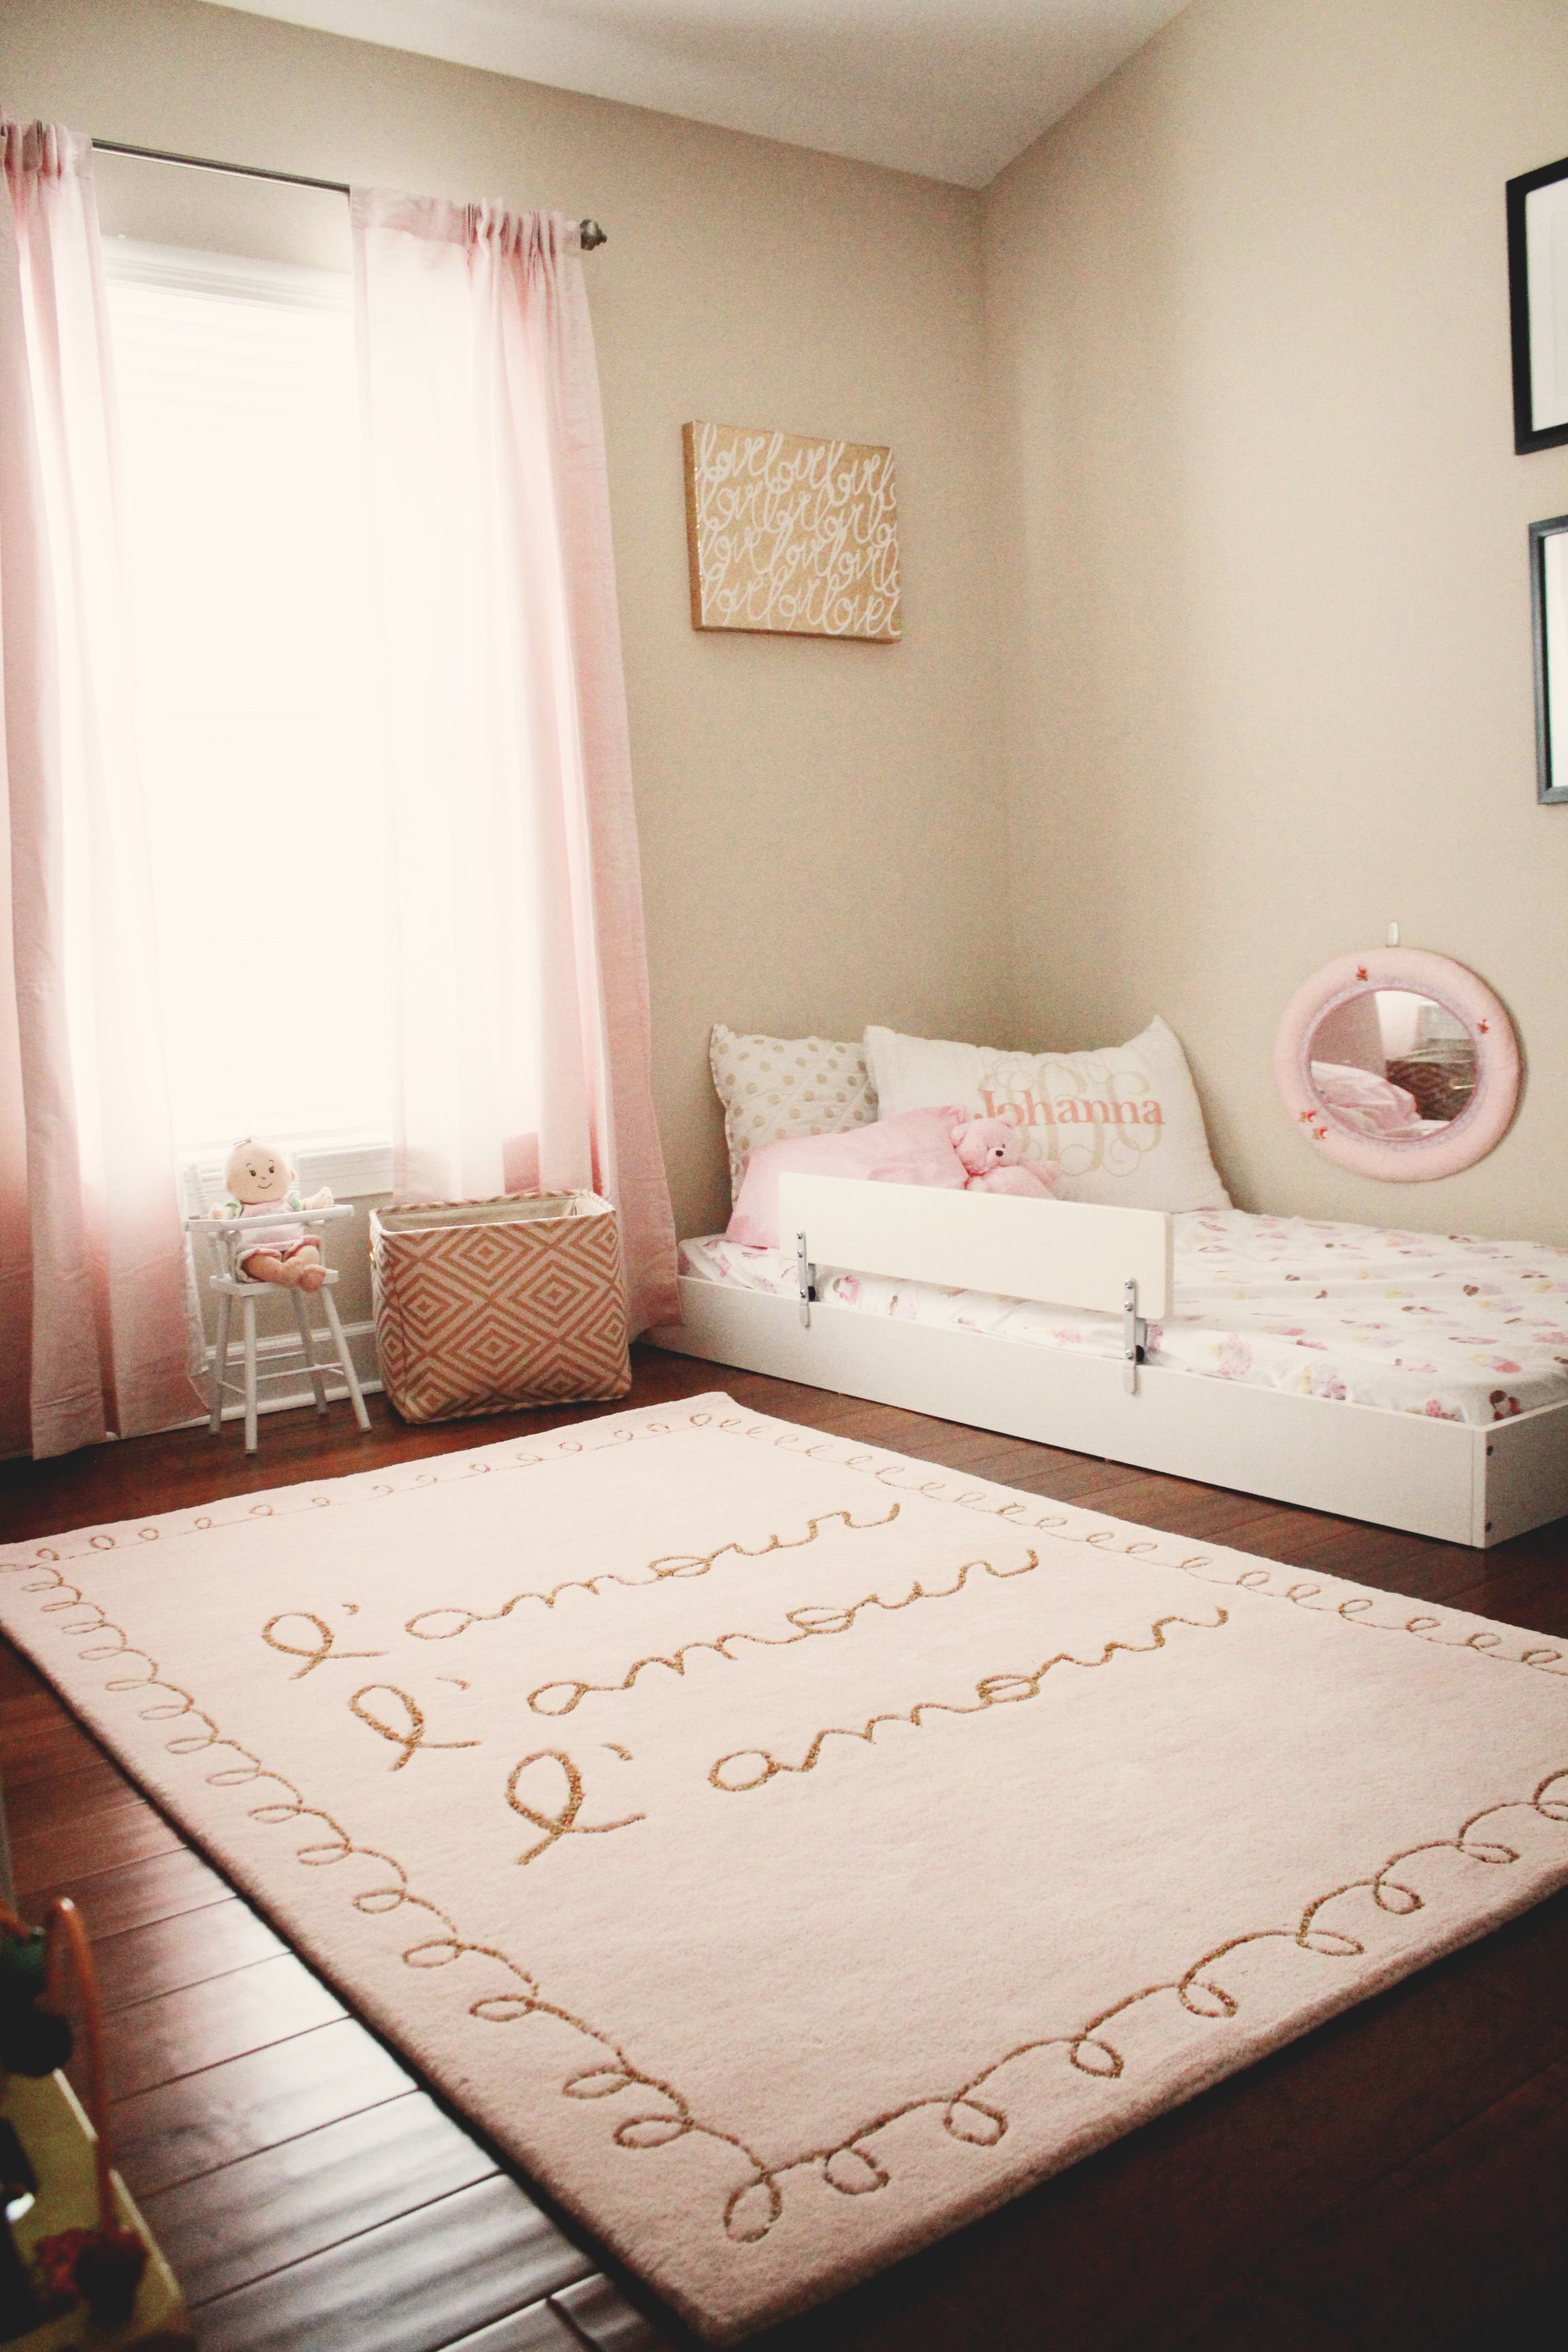 Toddler Girl Room Decor Montessori Floor Bedtoddler Bed Big Kid Room Ideas  Kids Decor